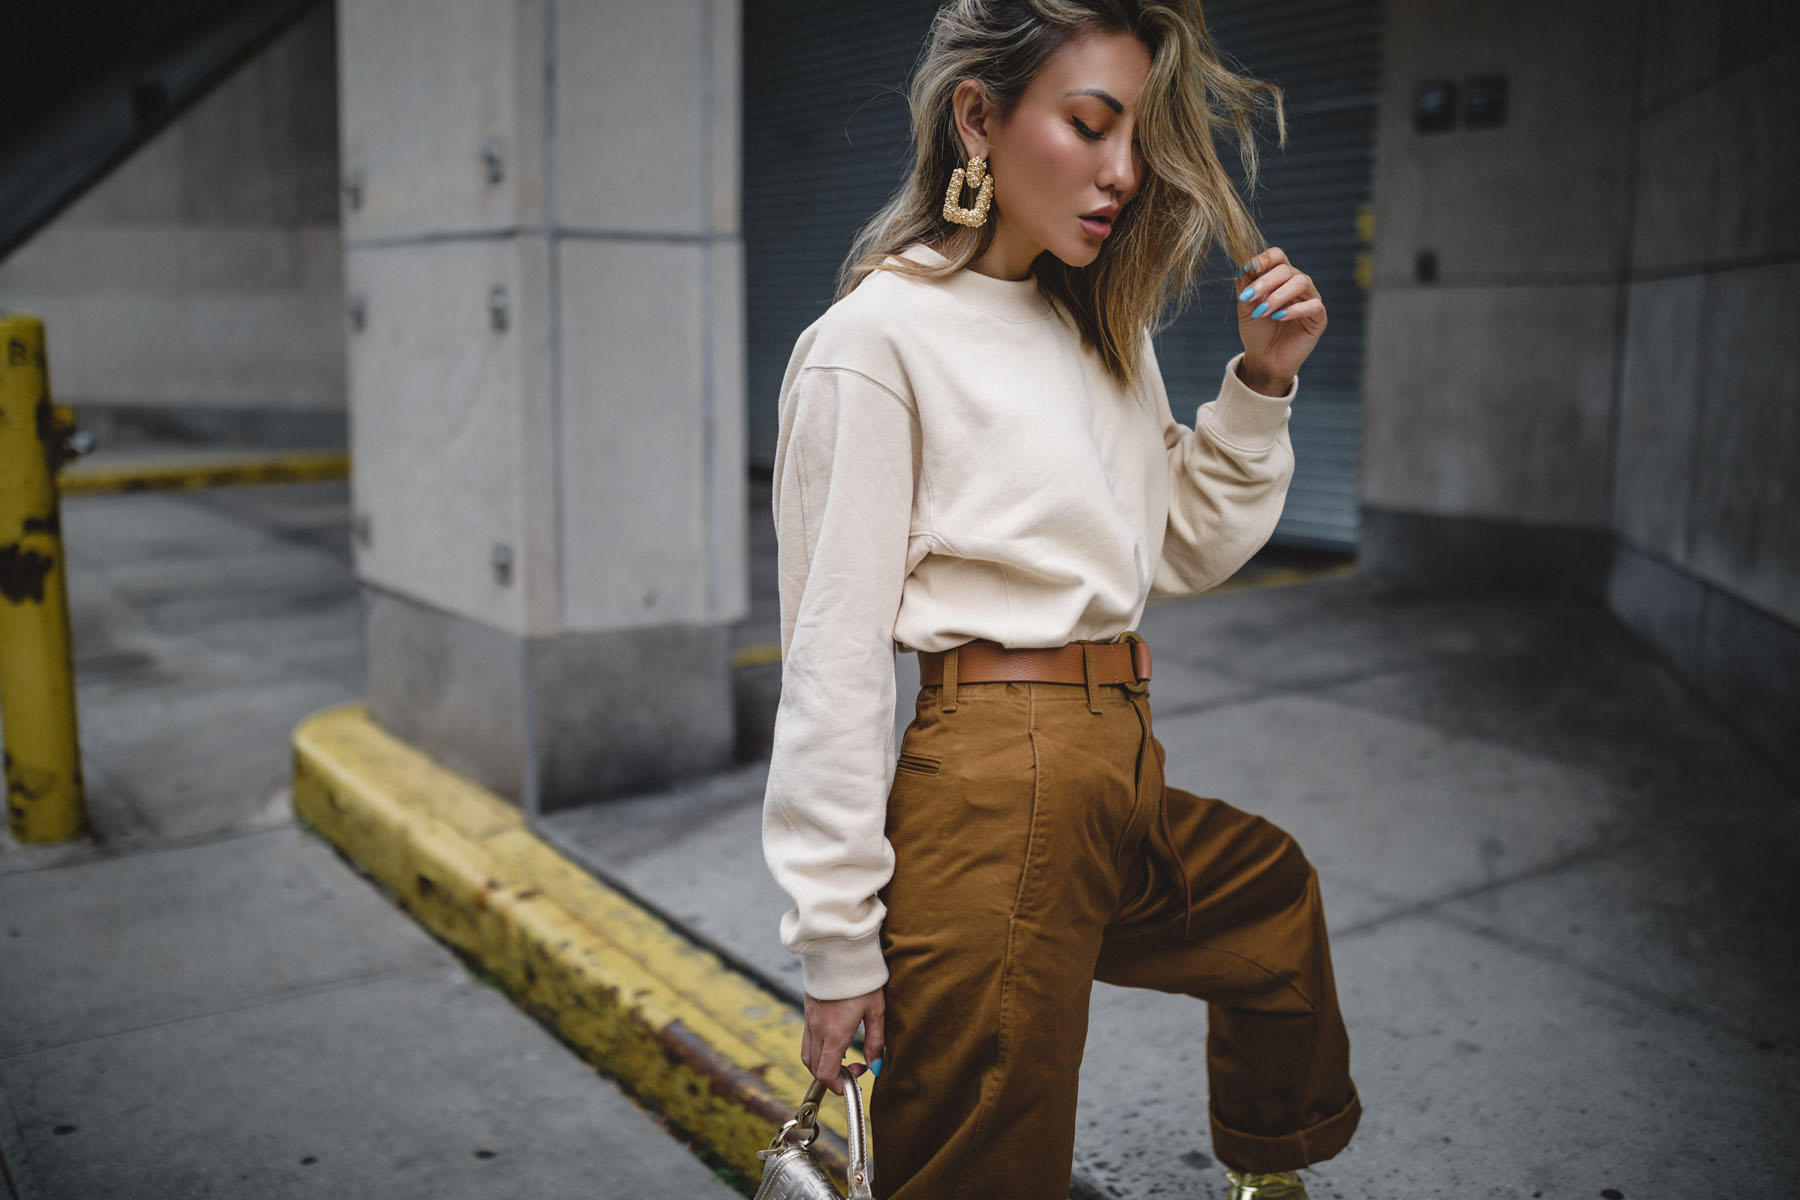 Love the Look! Uniqlo Wide Leg Curved Pants Are a Must-Have for Fall